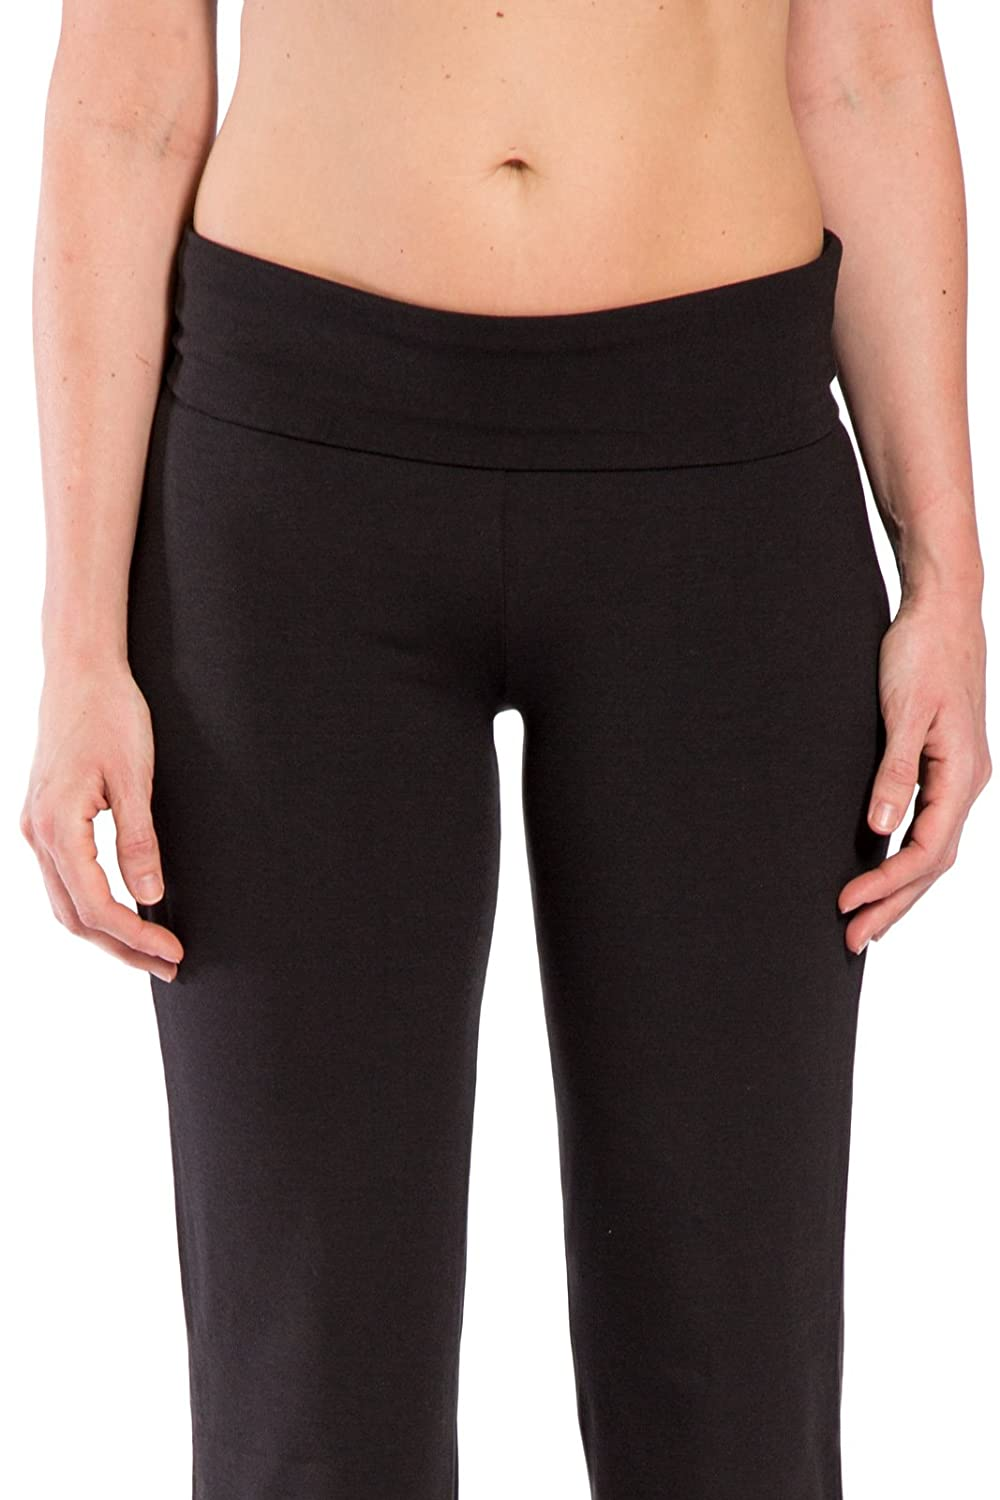 Fishers Finery Womens Ecofabric Fold Over Yoga Pant Bootleg Athletic Pant WV-01-YP1-061